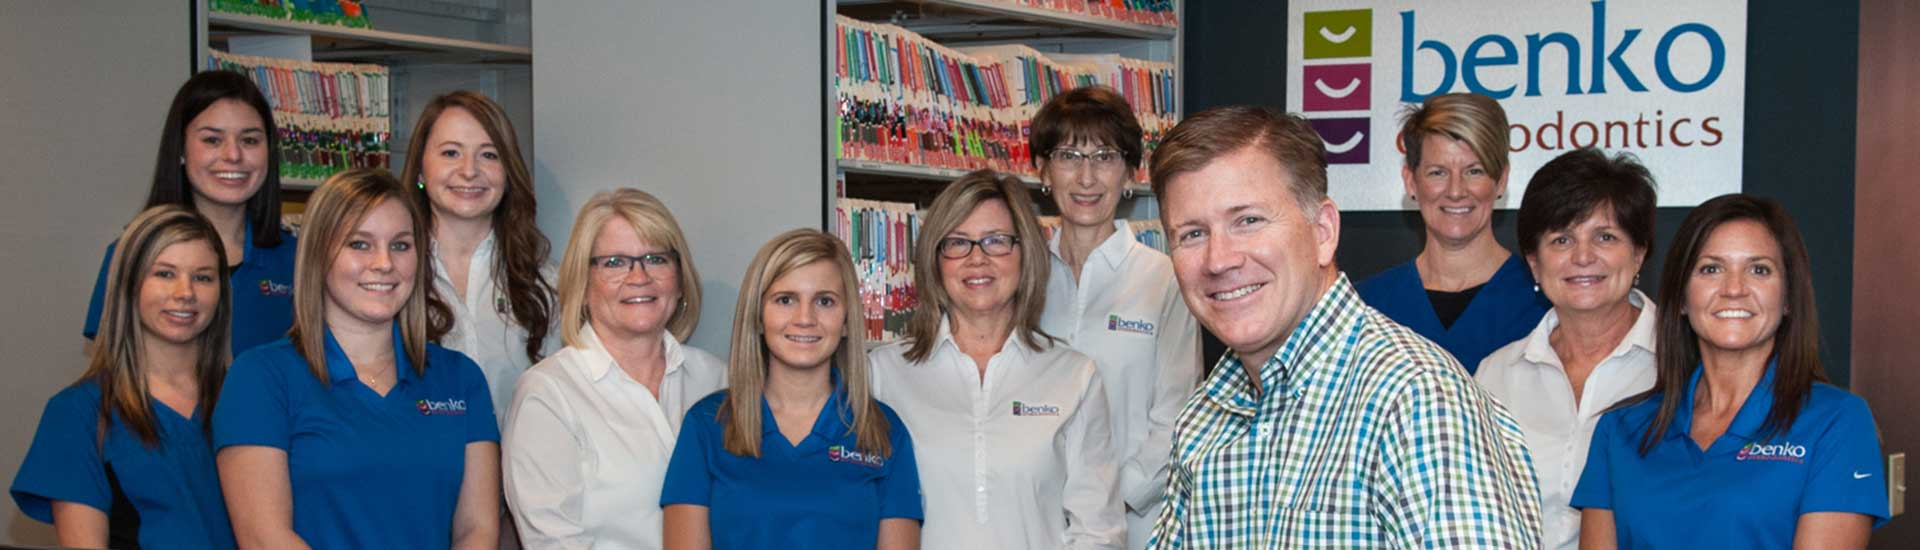 The Benko Team at Benko Orthodontics in Sarver Kittanning Butler PA